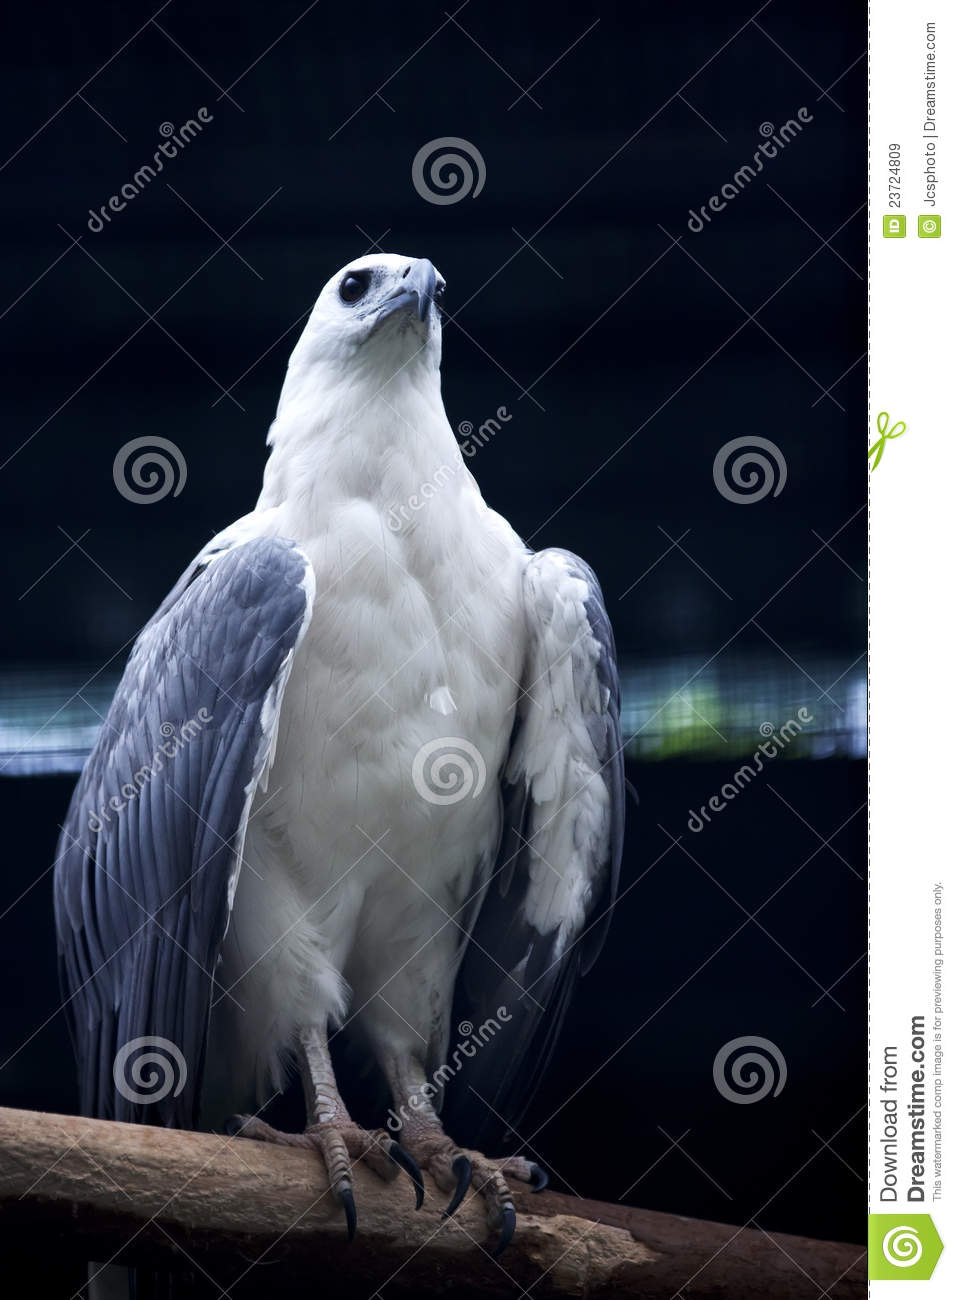 White-bellied Sea Eagle clipart #13, Download drawings